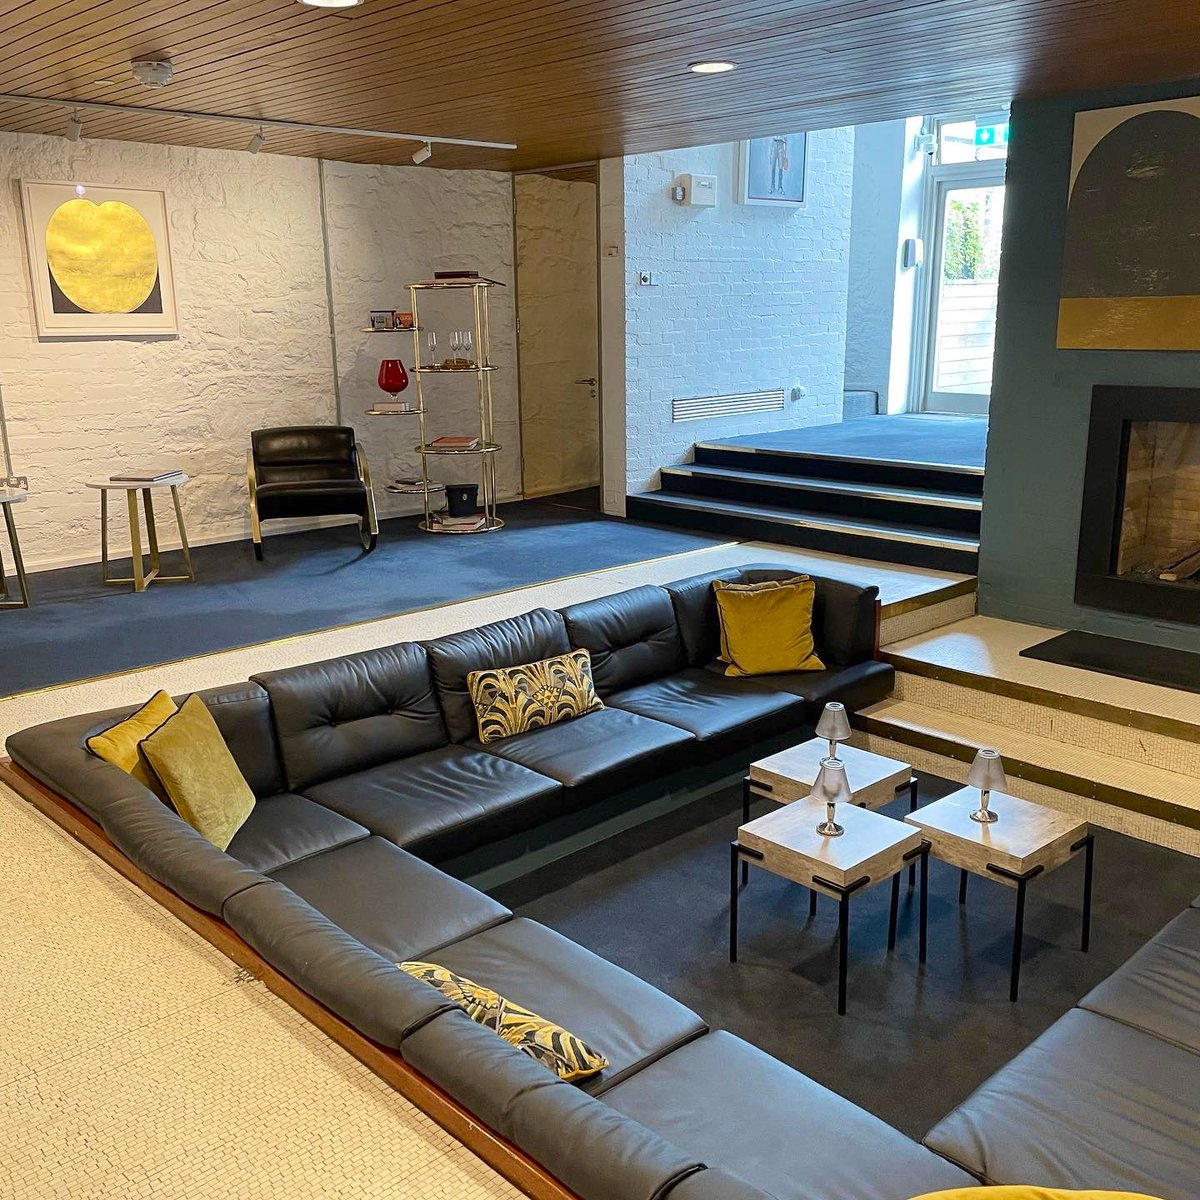 Stayed at a hotel in Dublin with a real life sunken lounge/conversation pit in the lobby 😍😍